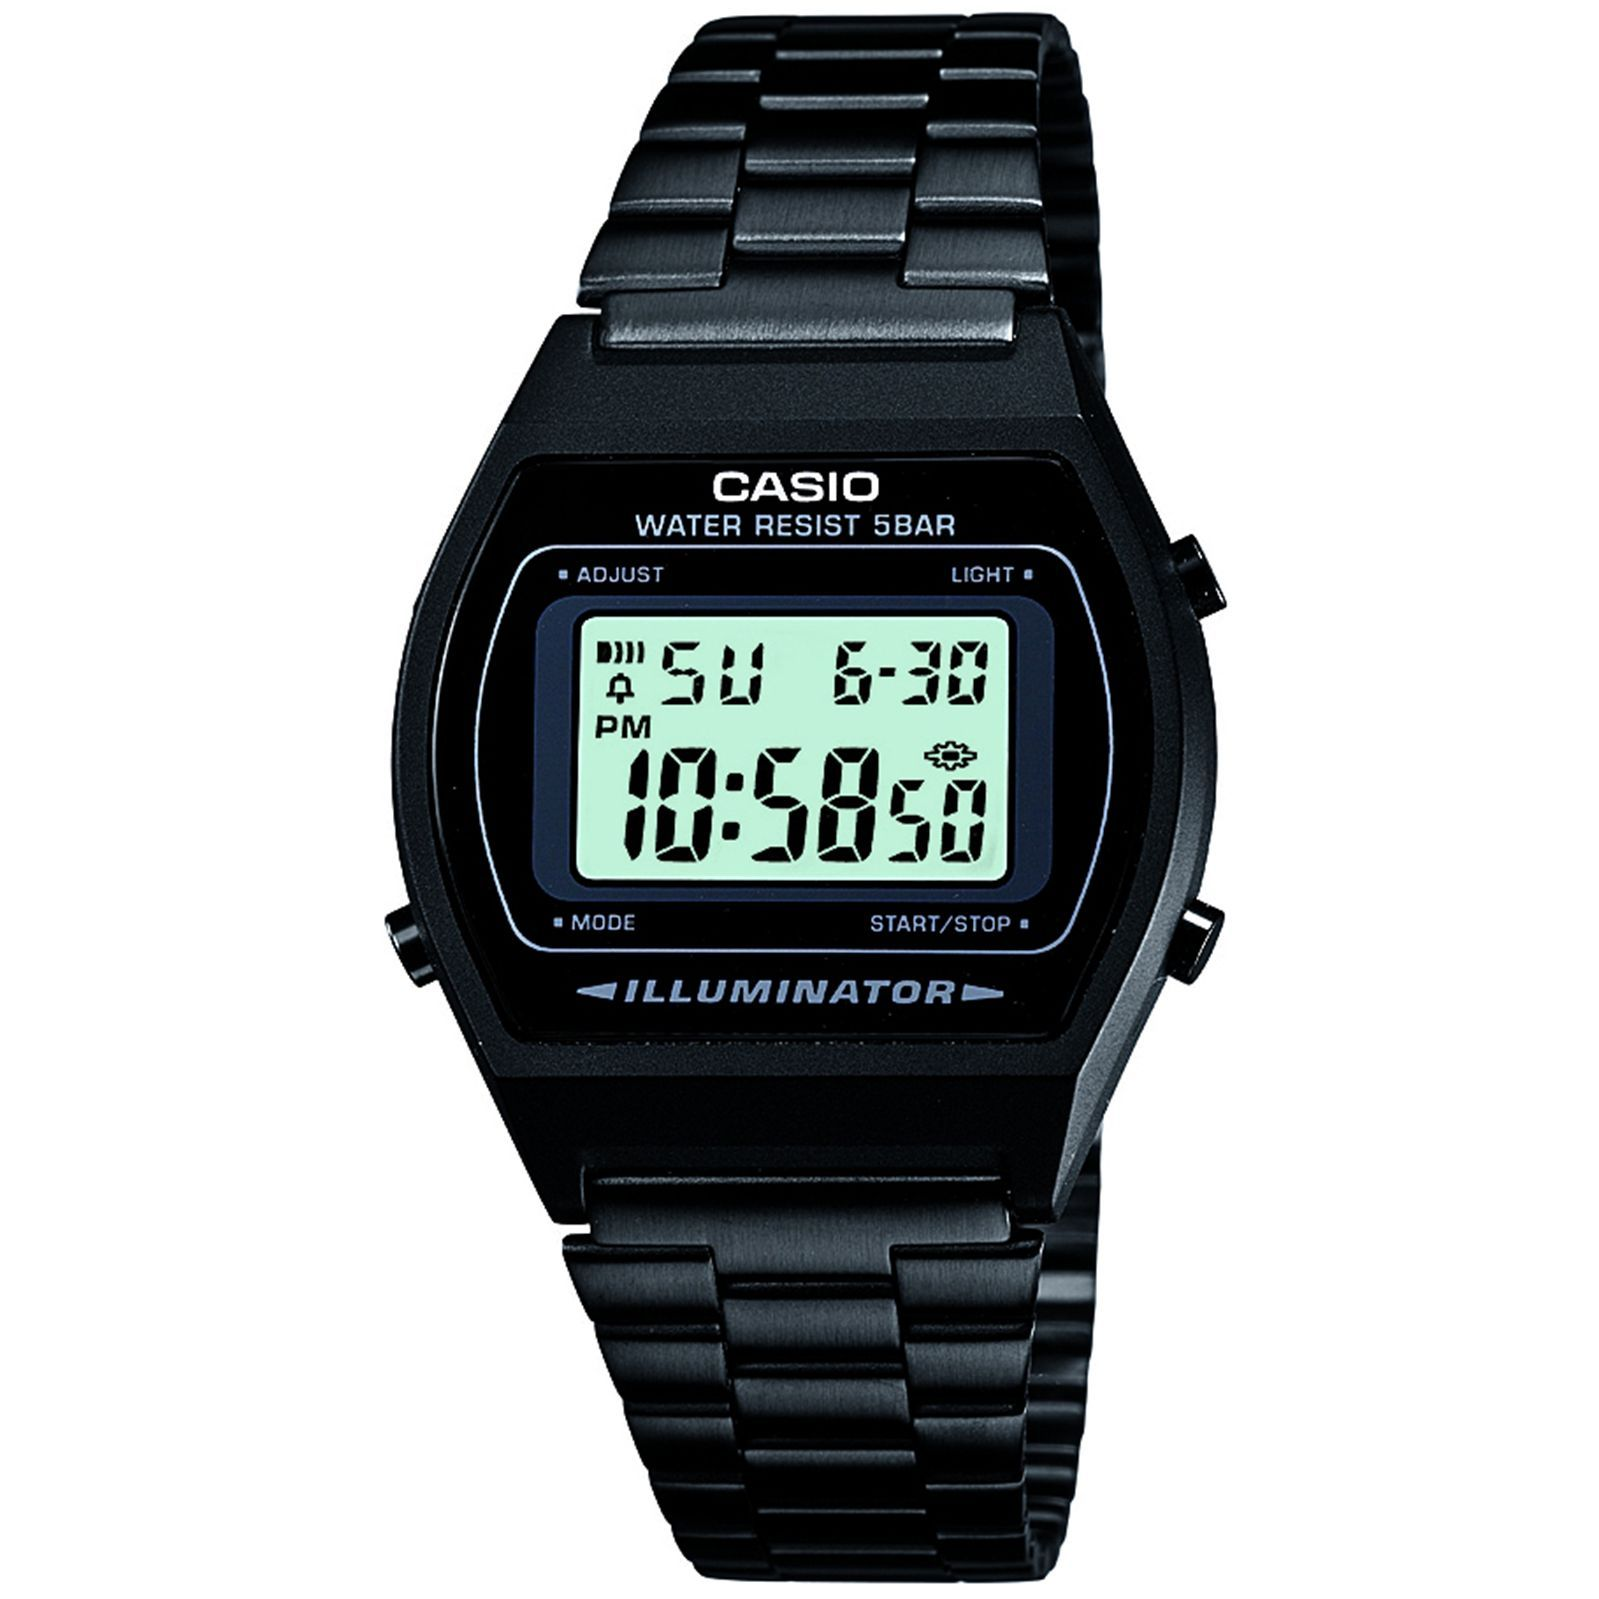 montre casio 5 bar